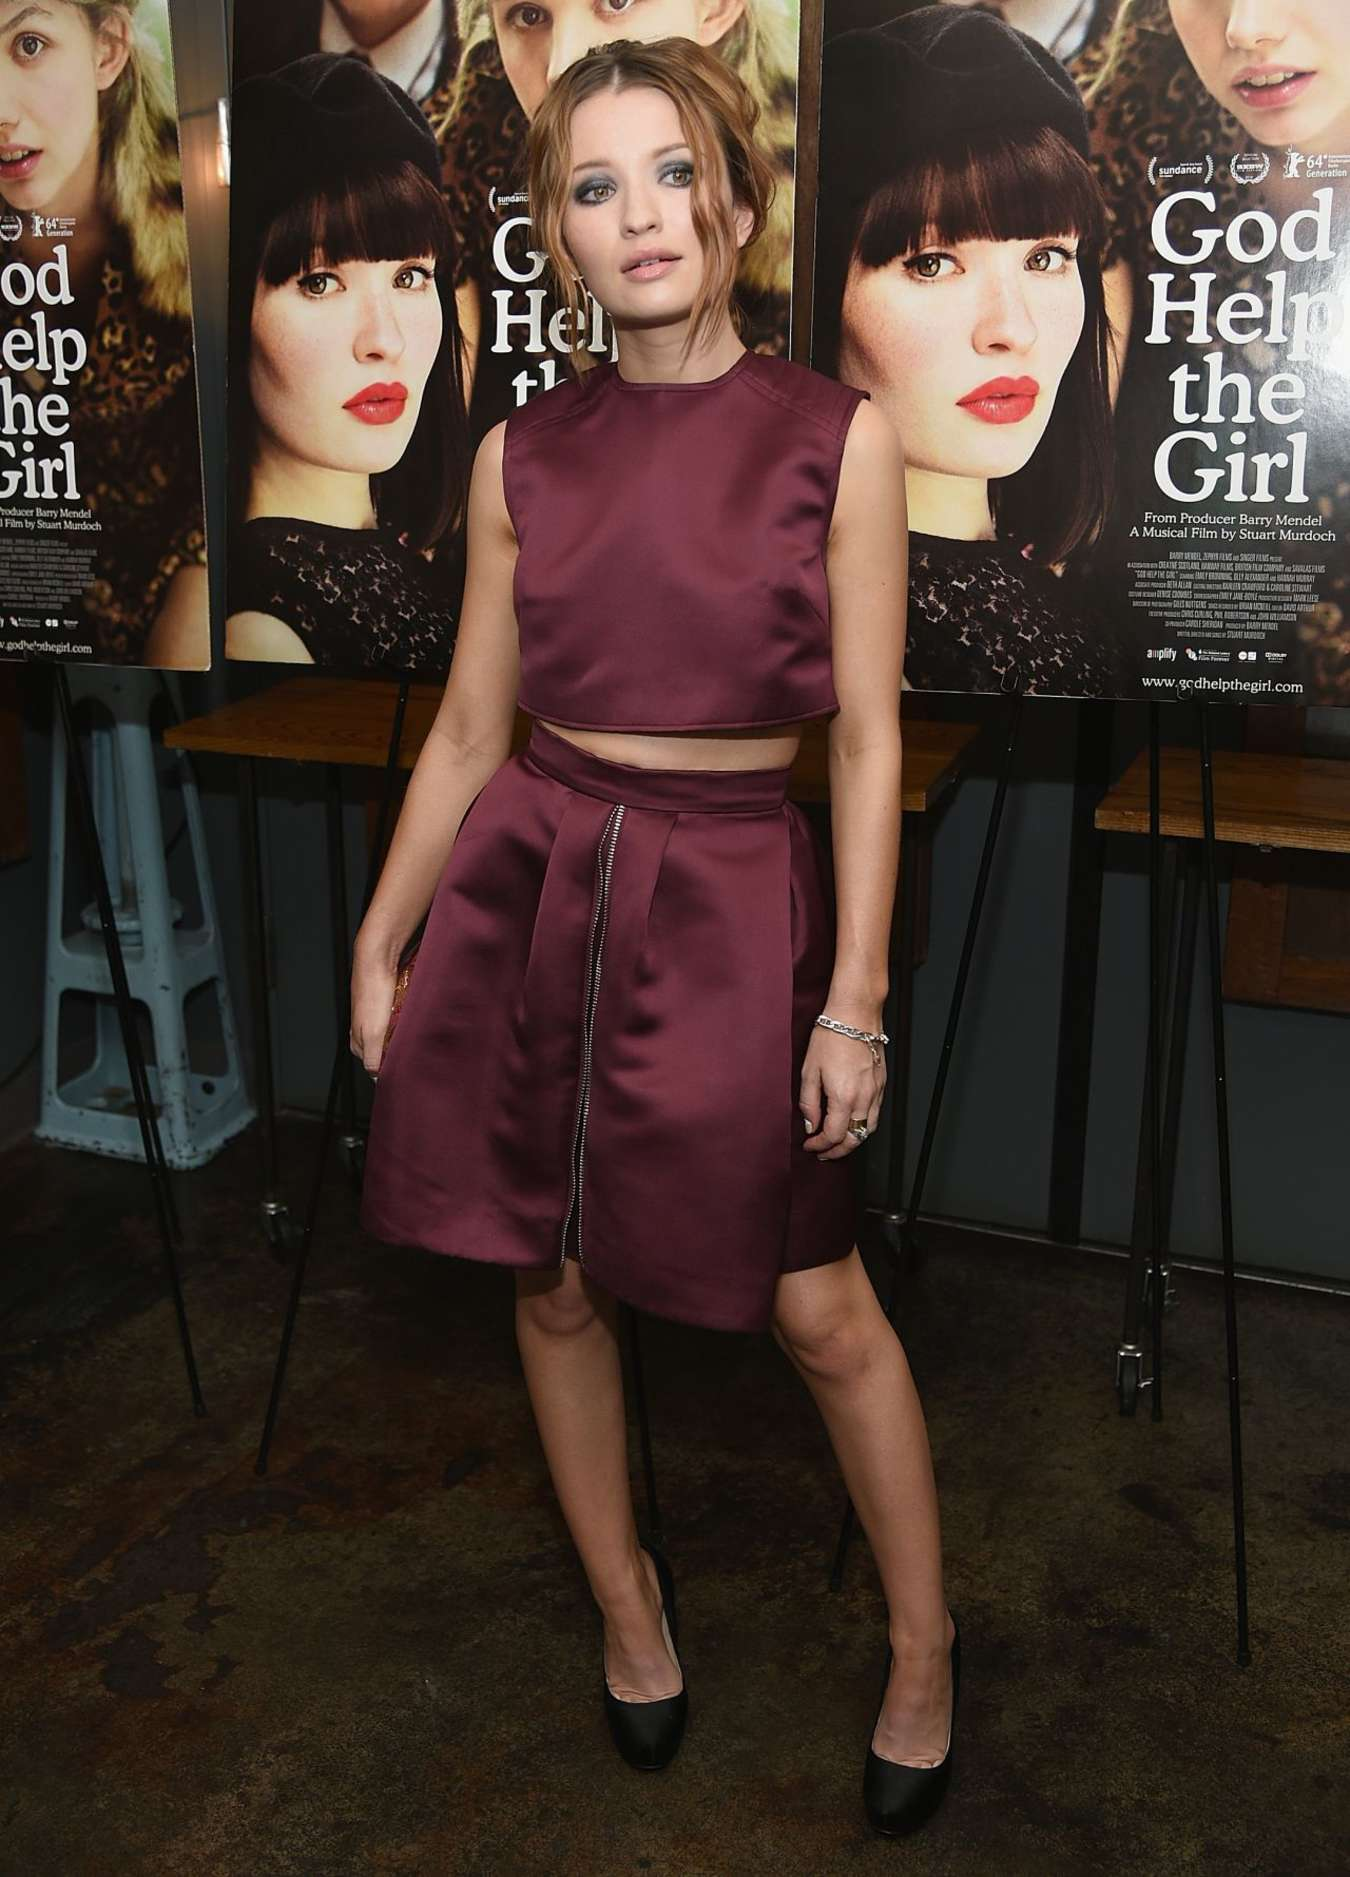 Emily Browning God Help The Girl Screening in New York City